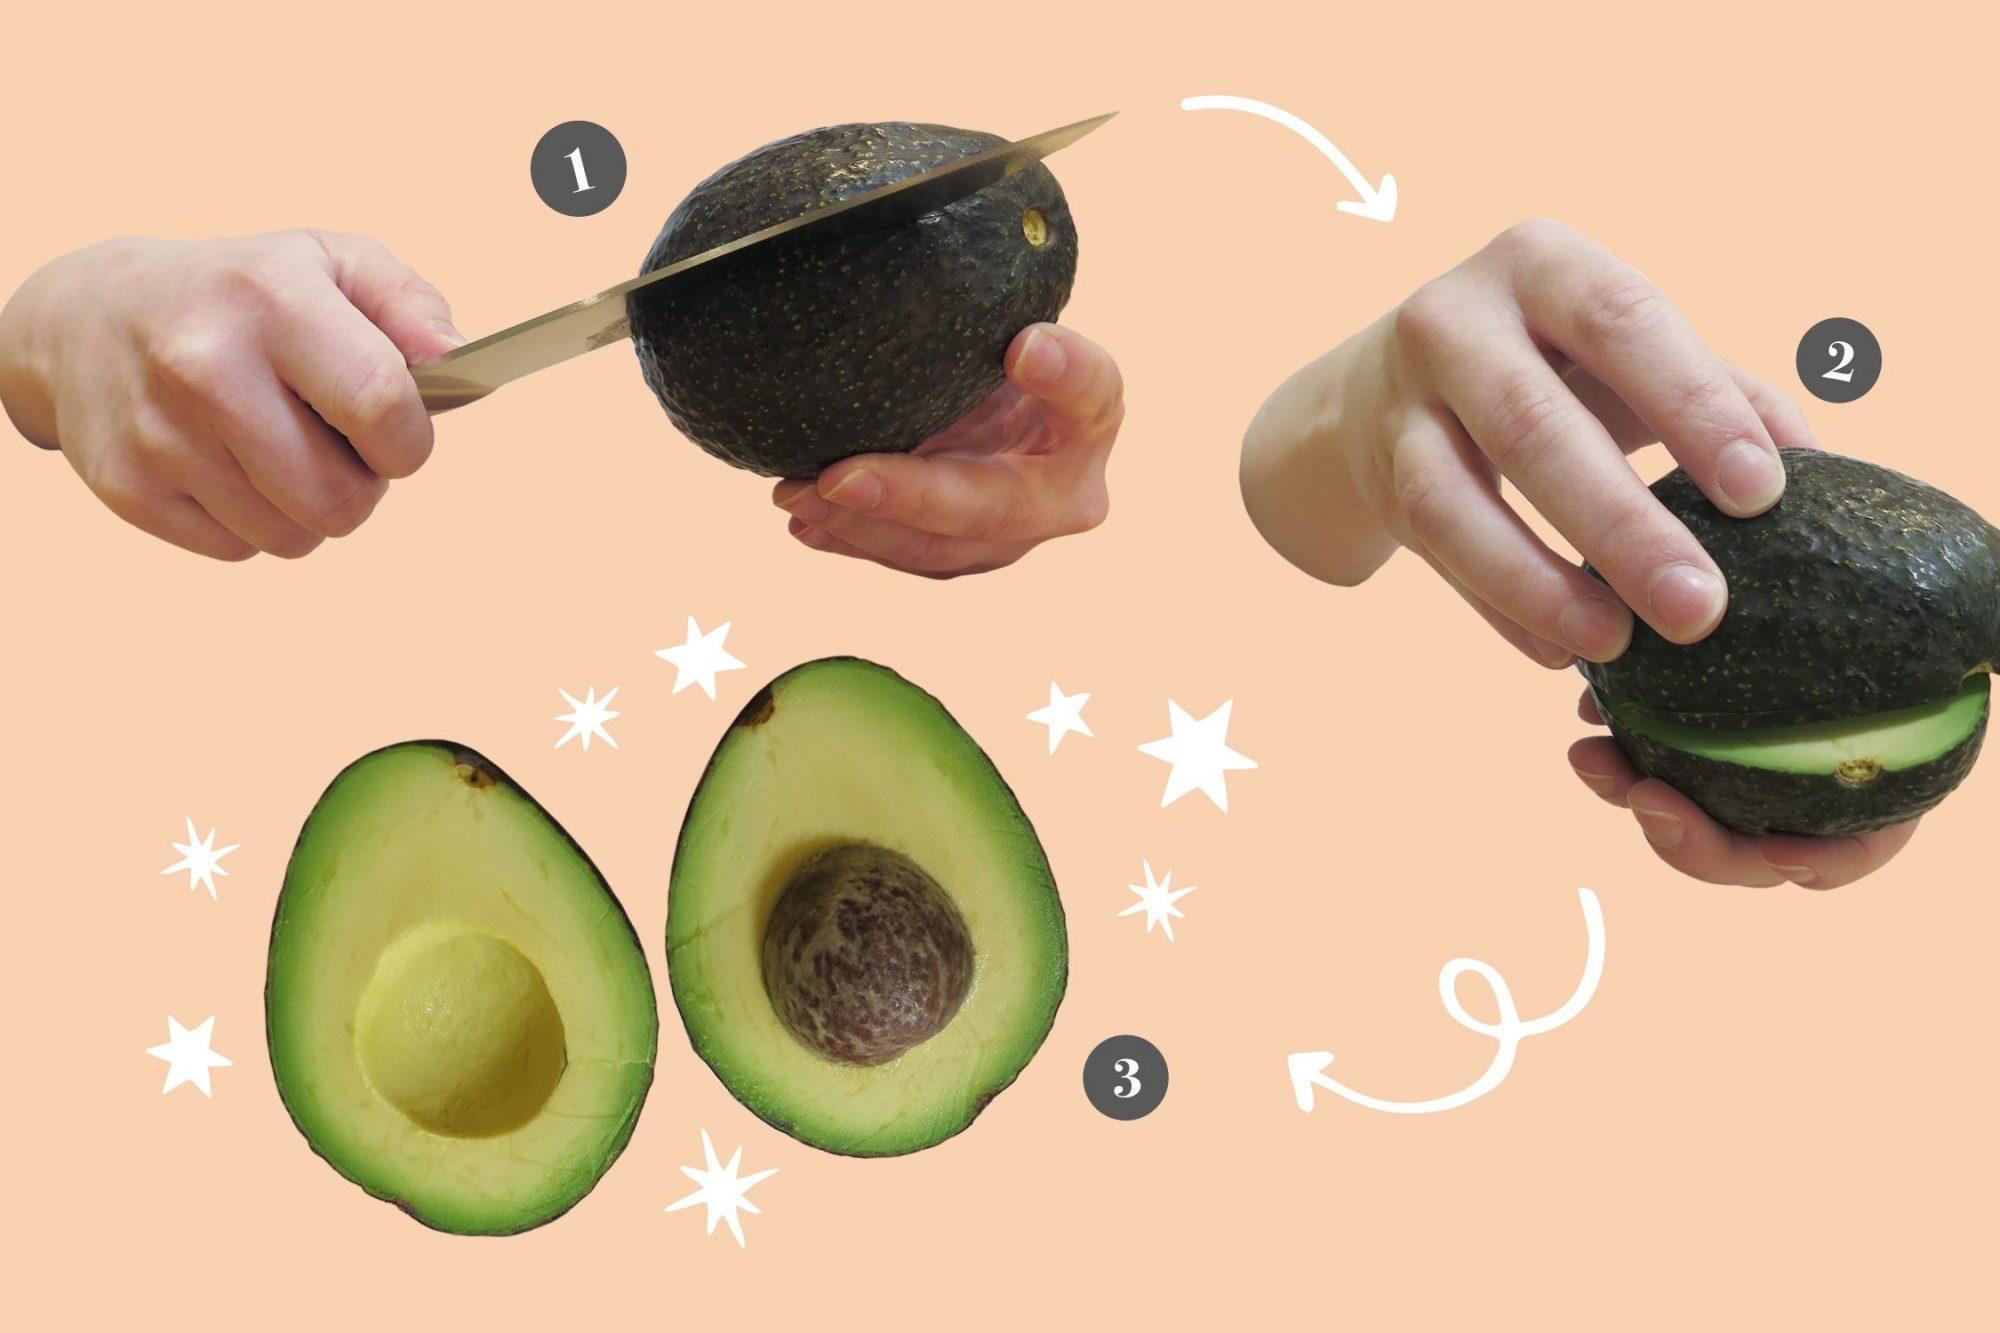 EC: Cut Avocados Safely with This Step-by-Step Guide